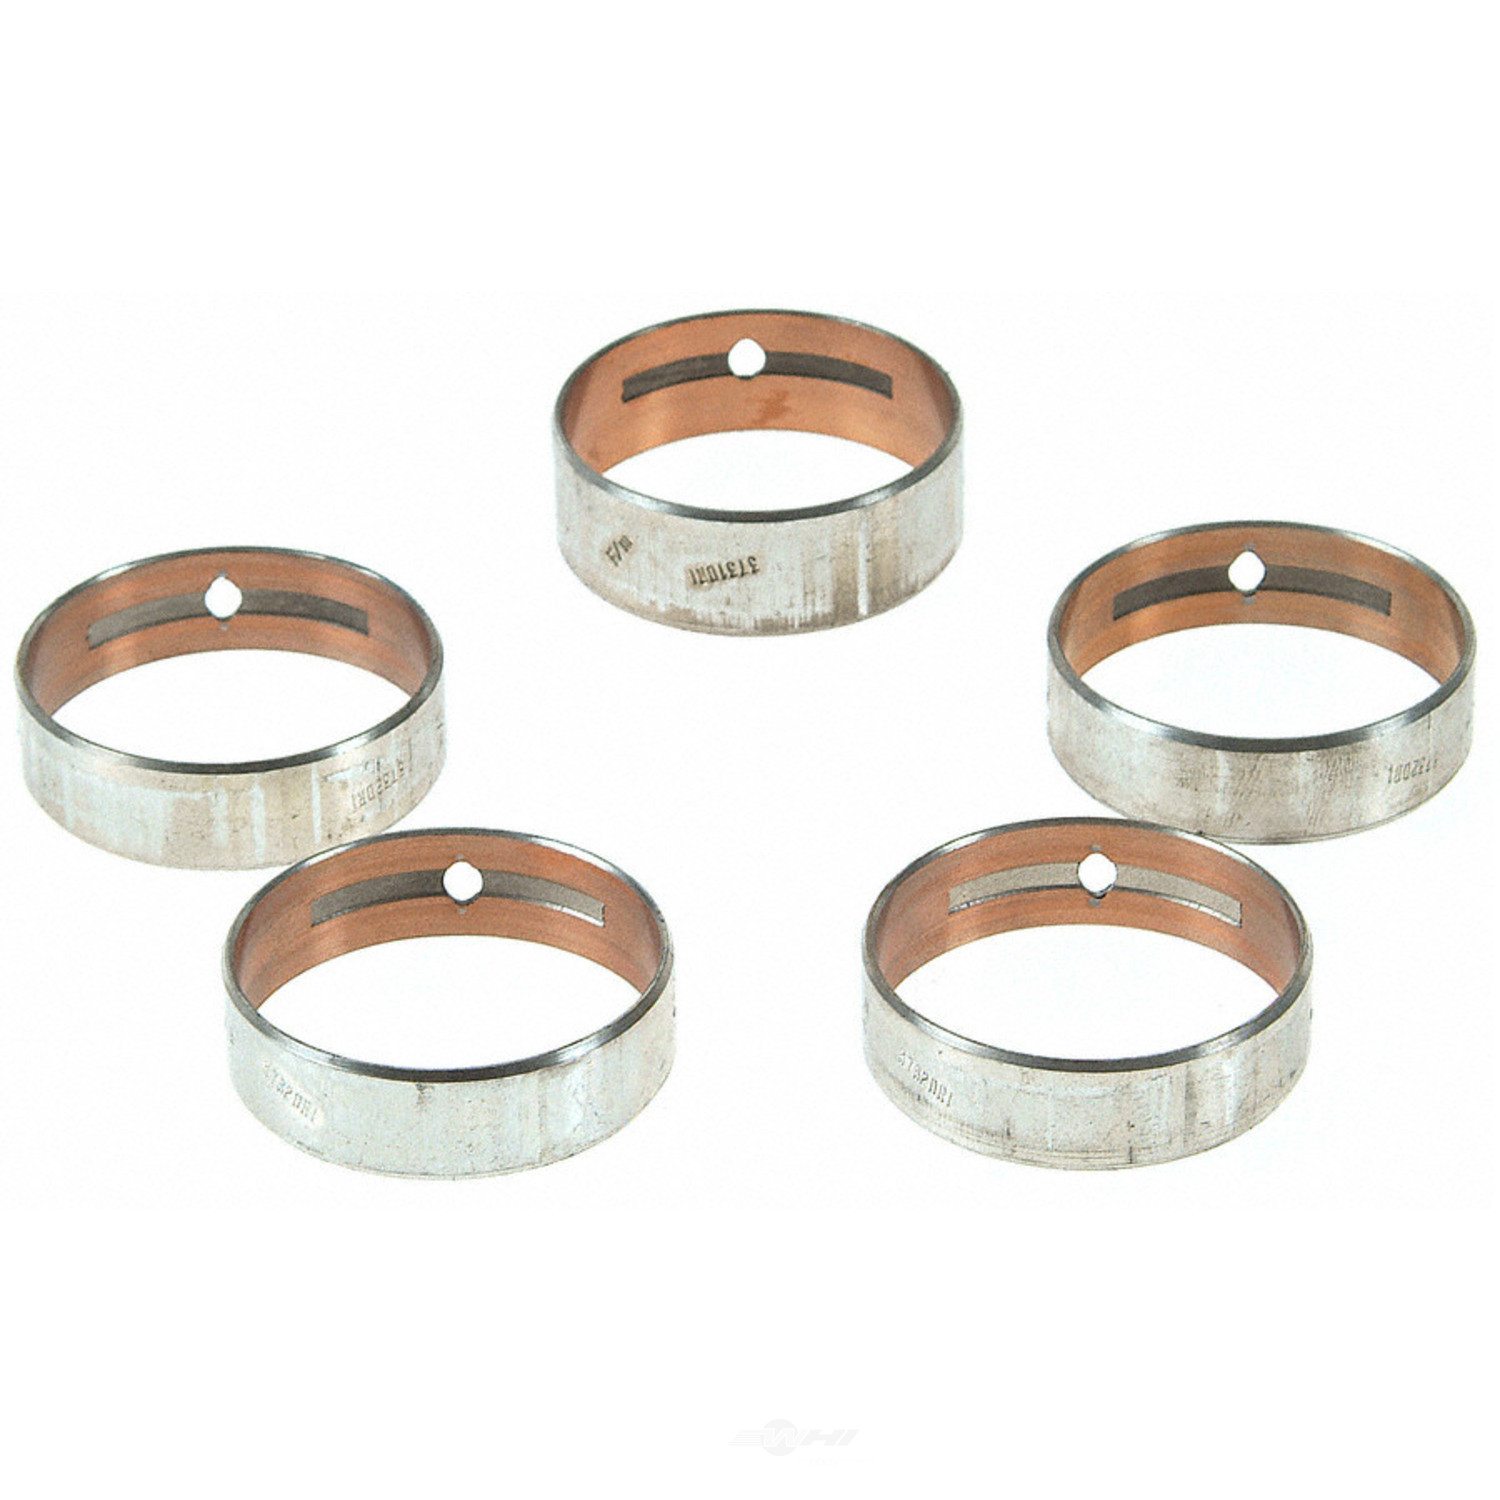 SEALED POWER - Engine Camshaft Bearing Set - SEA 1885M